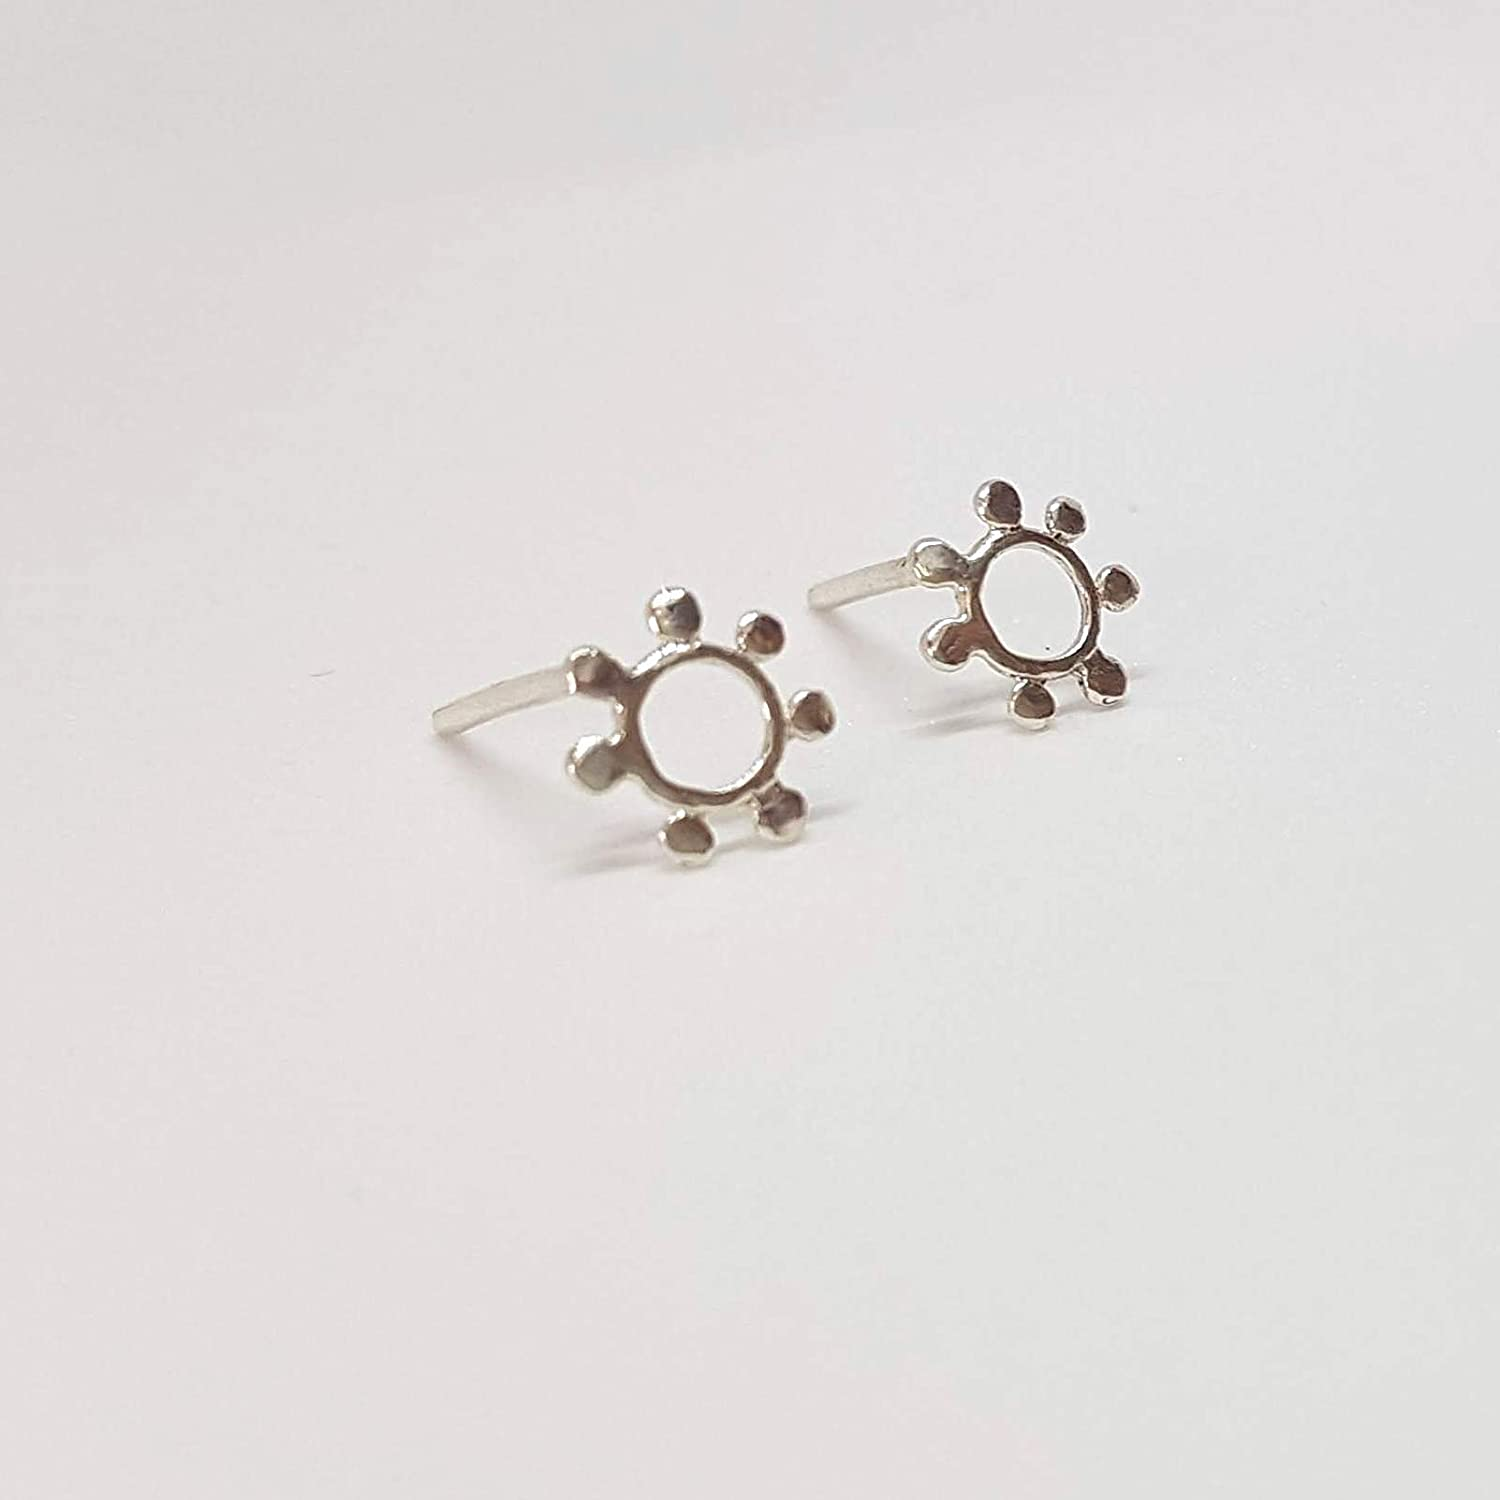 A Pair of Unique 925 Sterling Silver Small Tiny Post Earrings Flower//Sun Shaped Silver Stud Earrings Handmade Womens Jewelry Indian Style